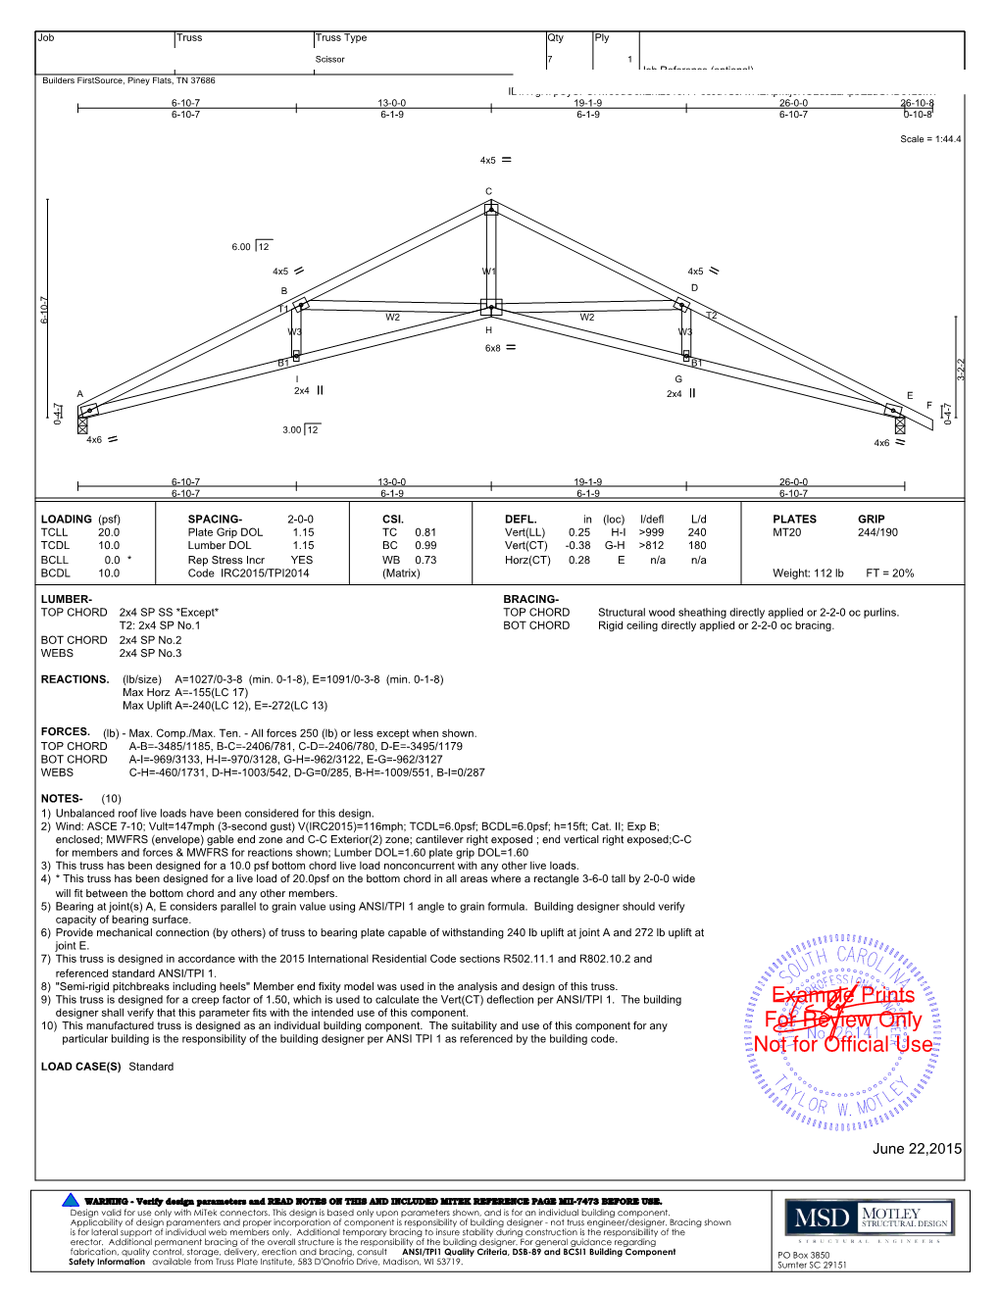 Seals Example Page 004.png